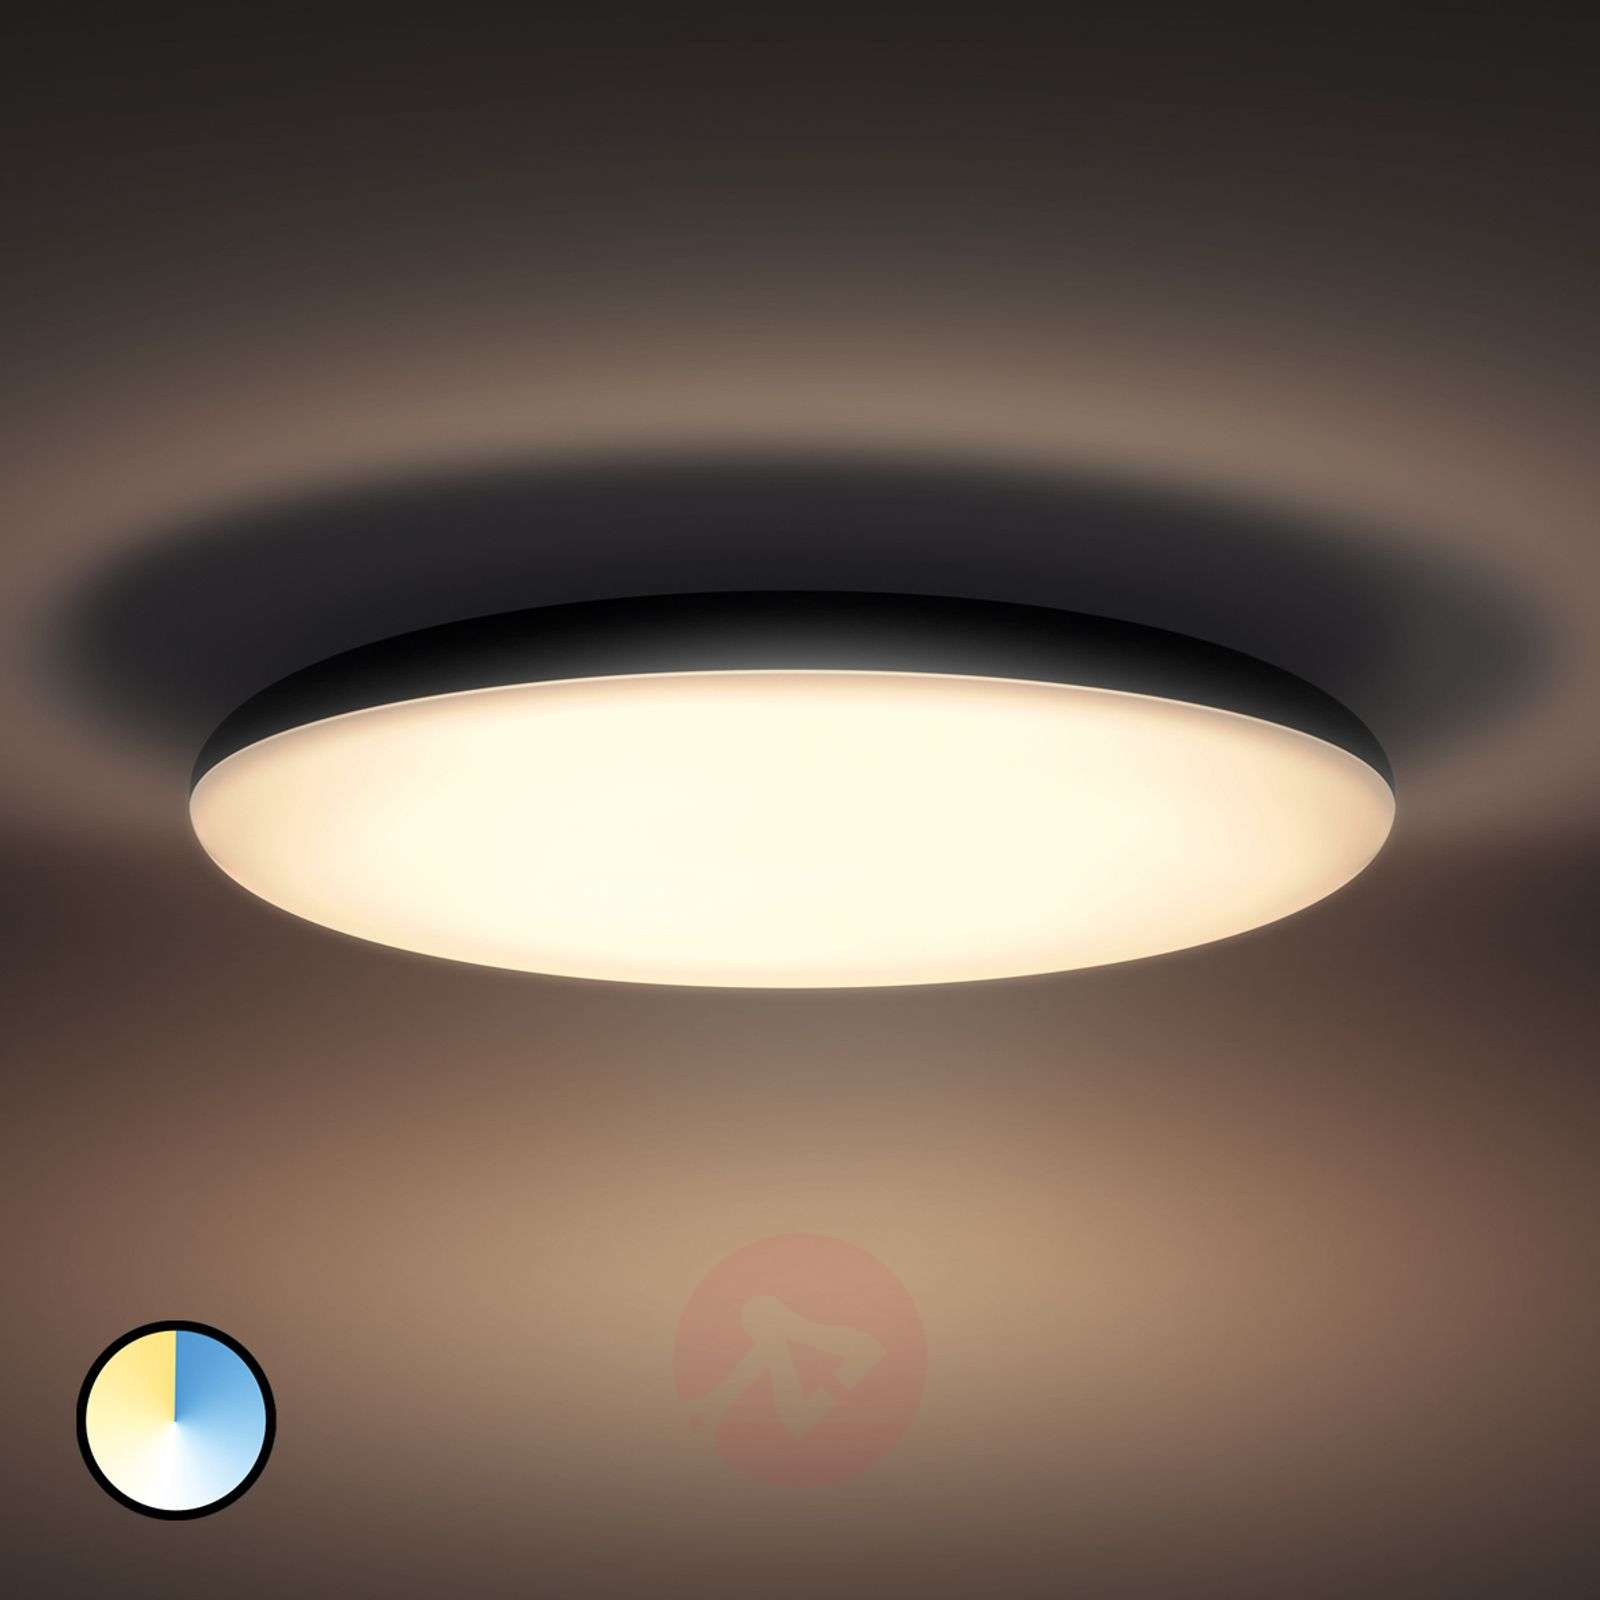 Philips Hue Led Ceiling Light Cher With Dimmer Lights Co Uk